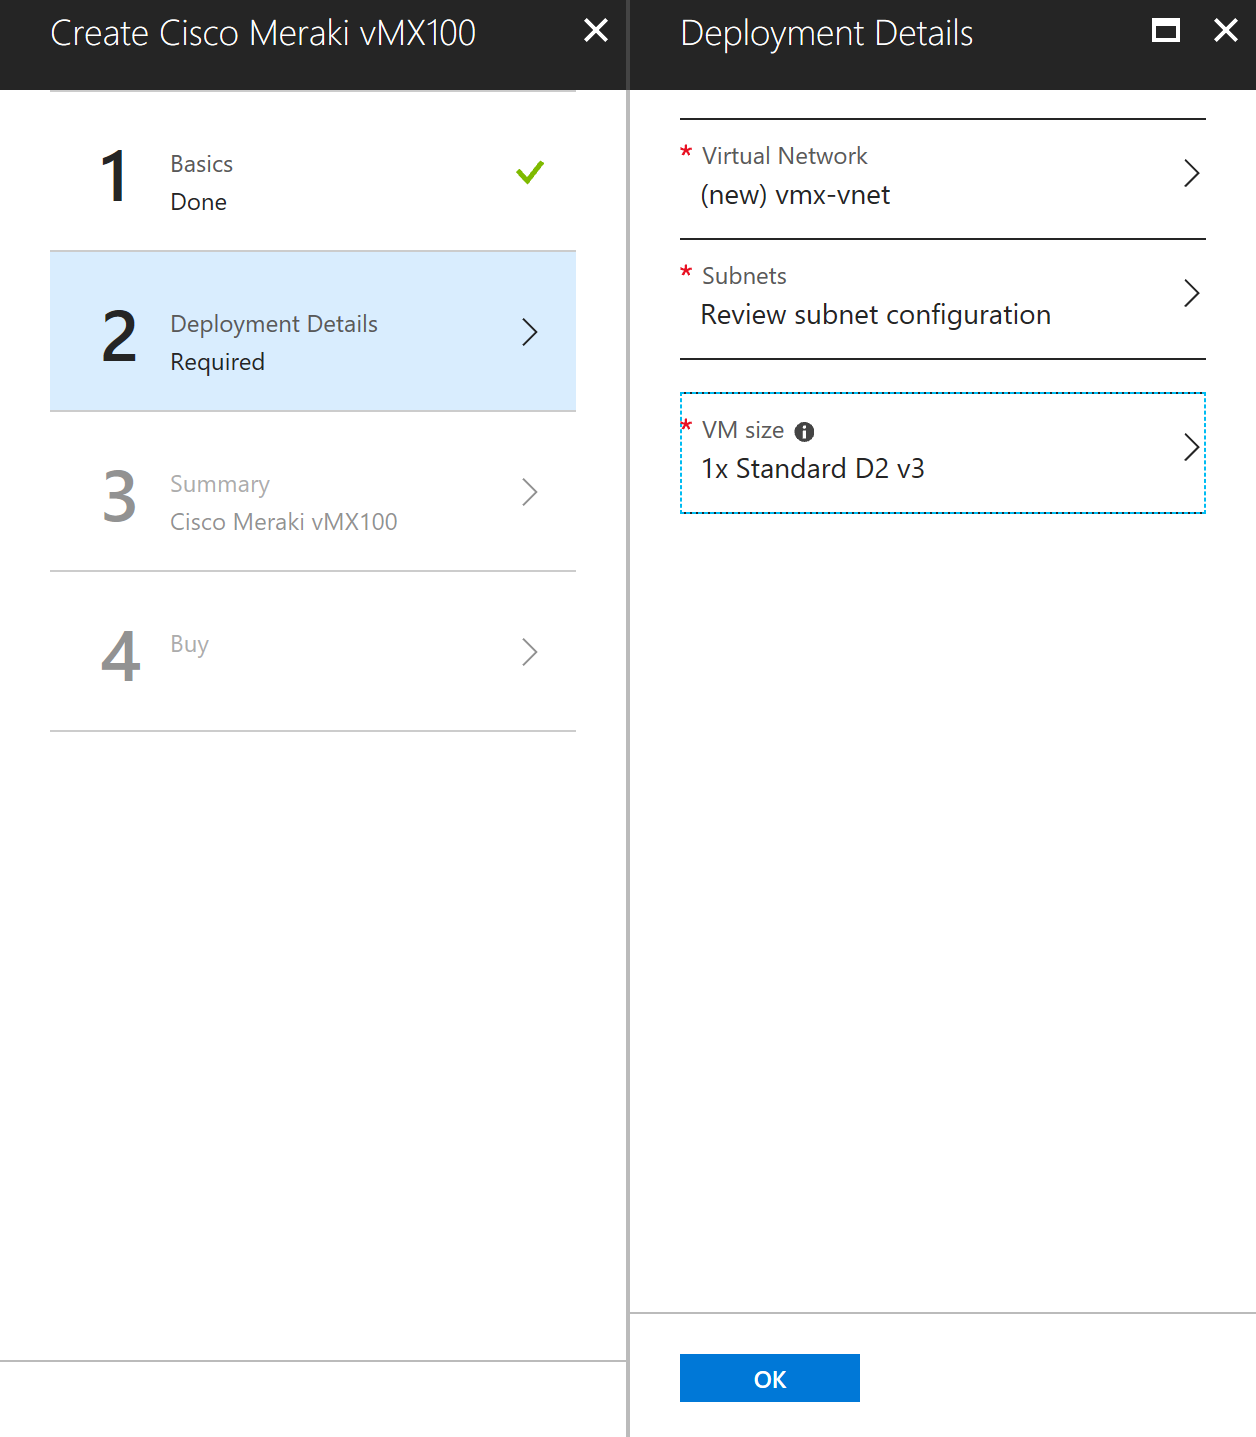 Azure Site to Site VPN with Cisco Meraki vMX100 - Eric's